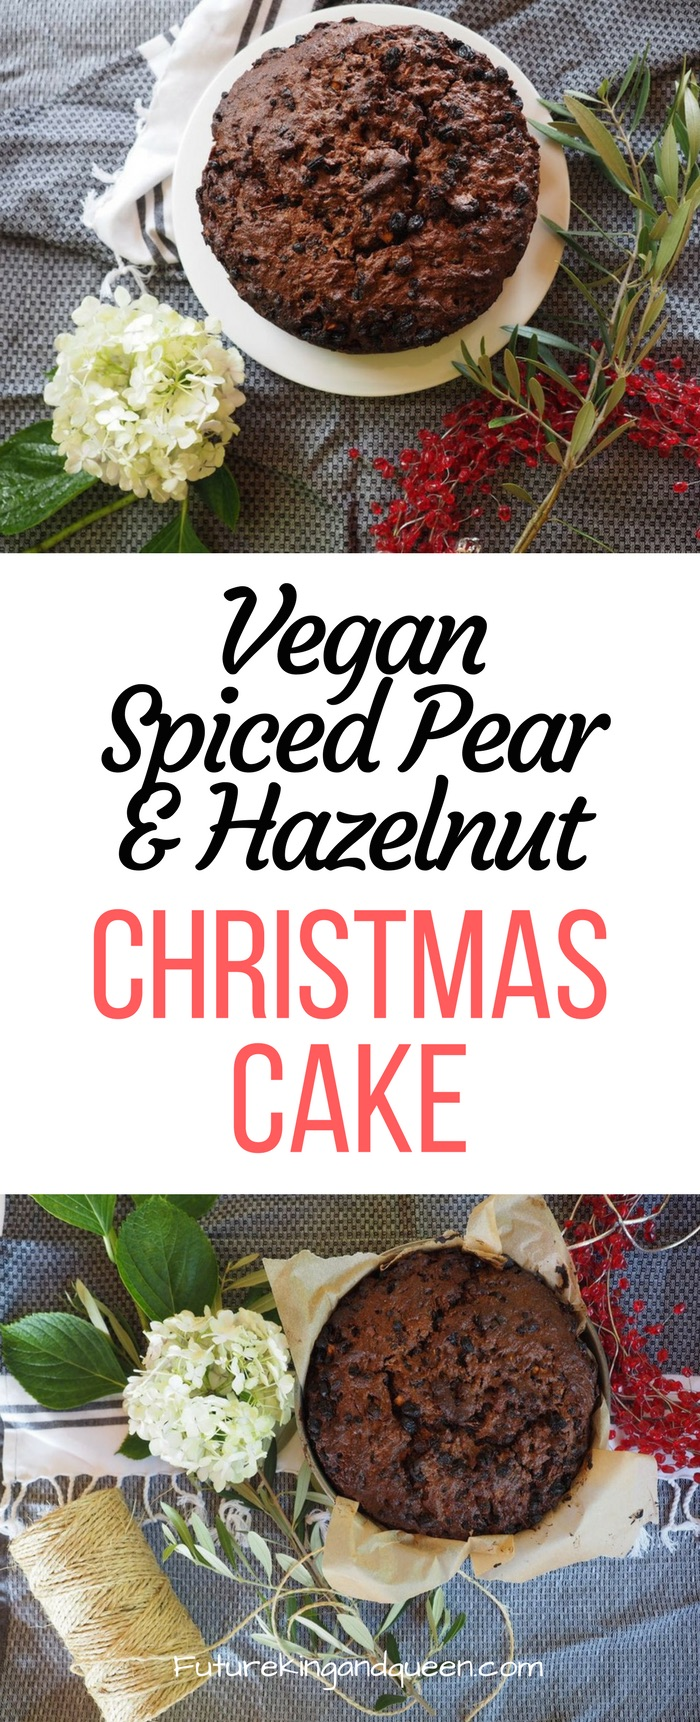 Vegan Spiced Pear and Hazelnut Christmas Cake Recipe Idea